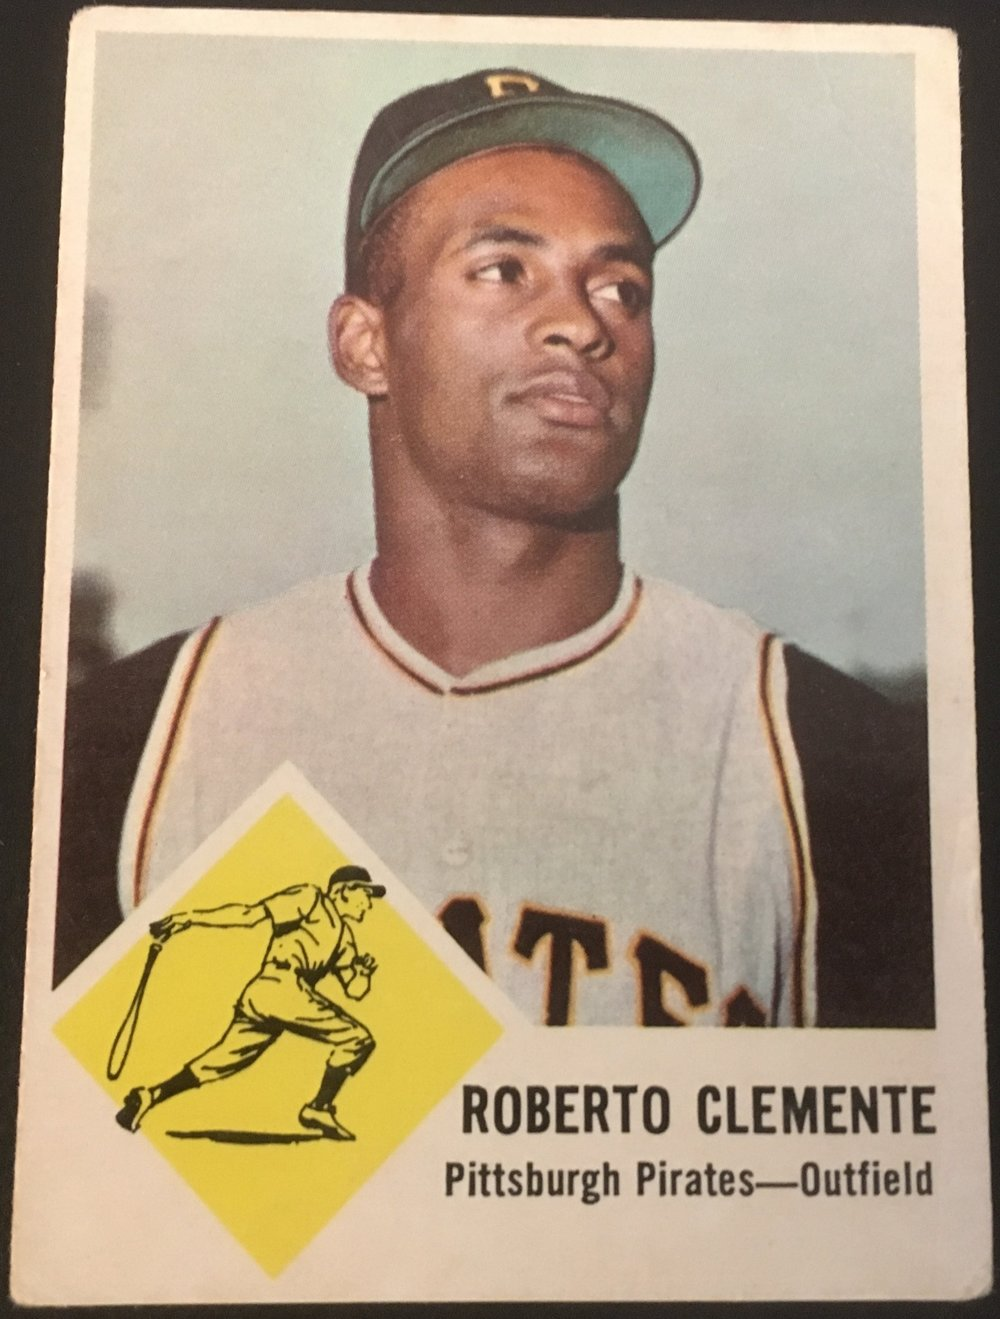 The Clemente was the final card I needed to complete my set.